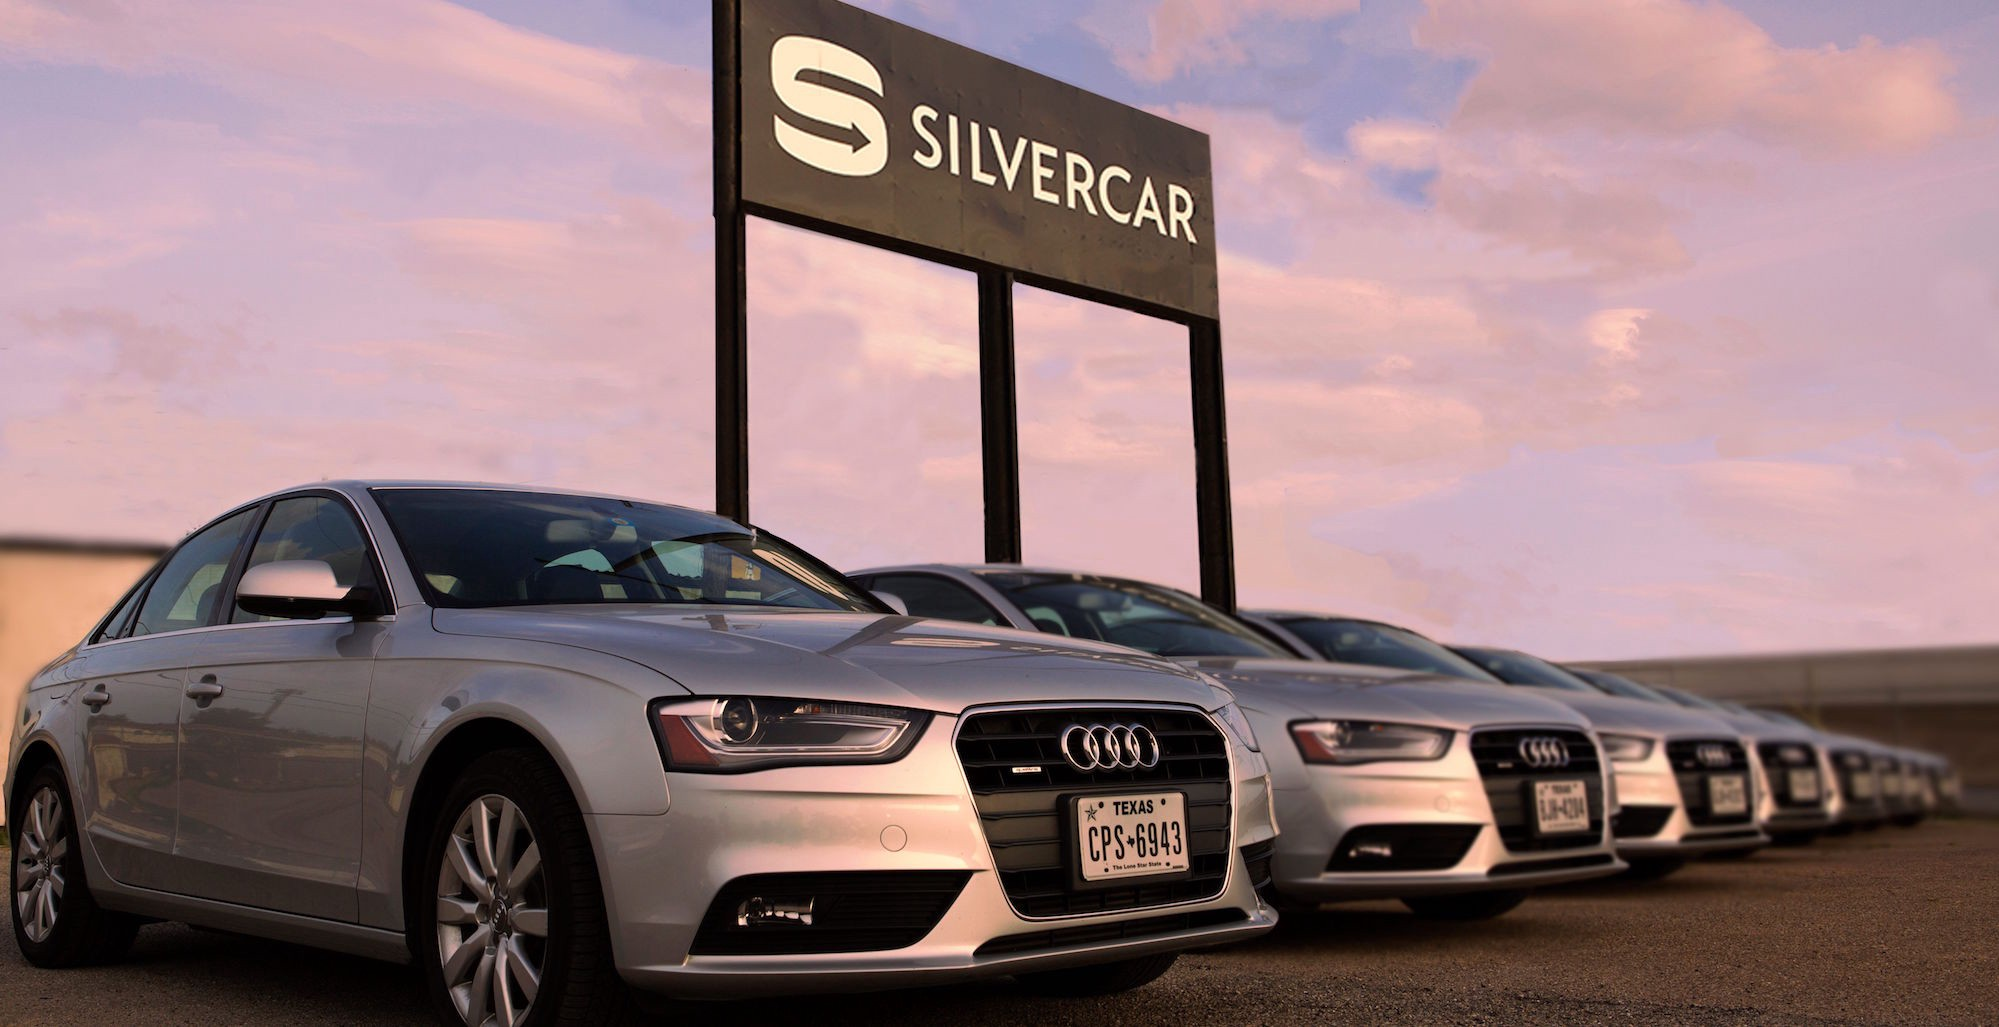 I Got Off The Plane And Headed Down To Al Car Shuttle Pickup Outside Of Dallas Love Field Opened My Phone C On Silvercar